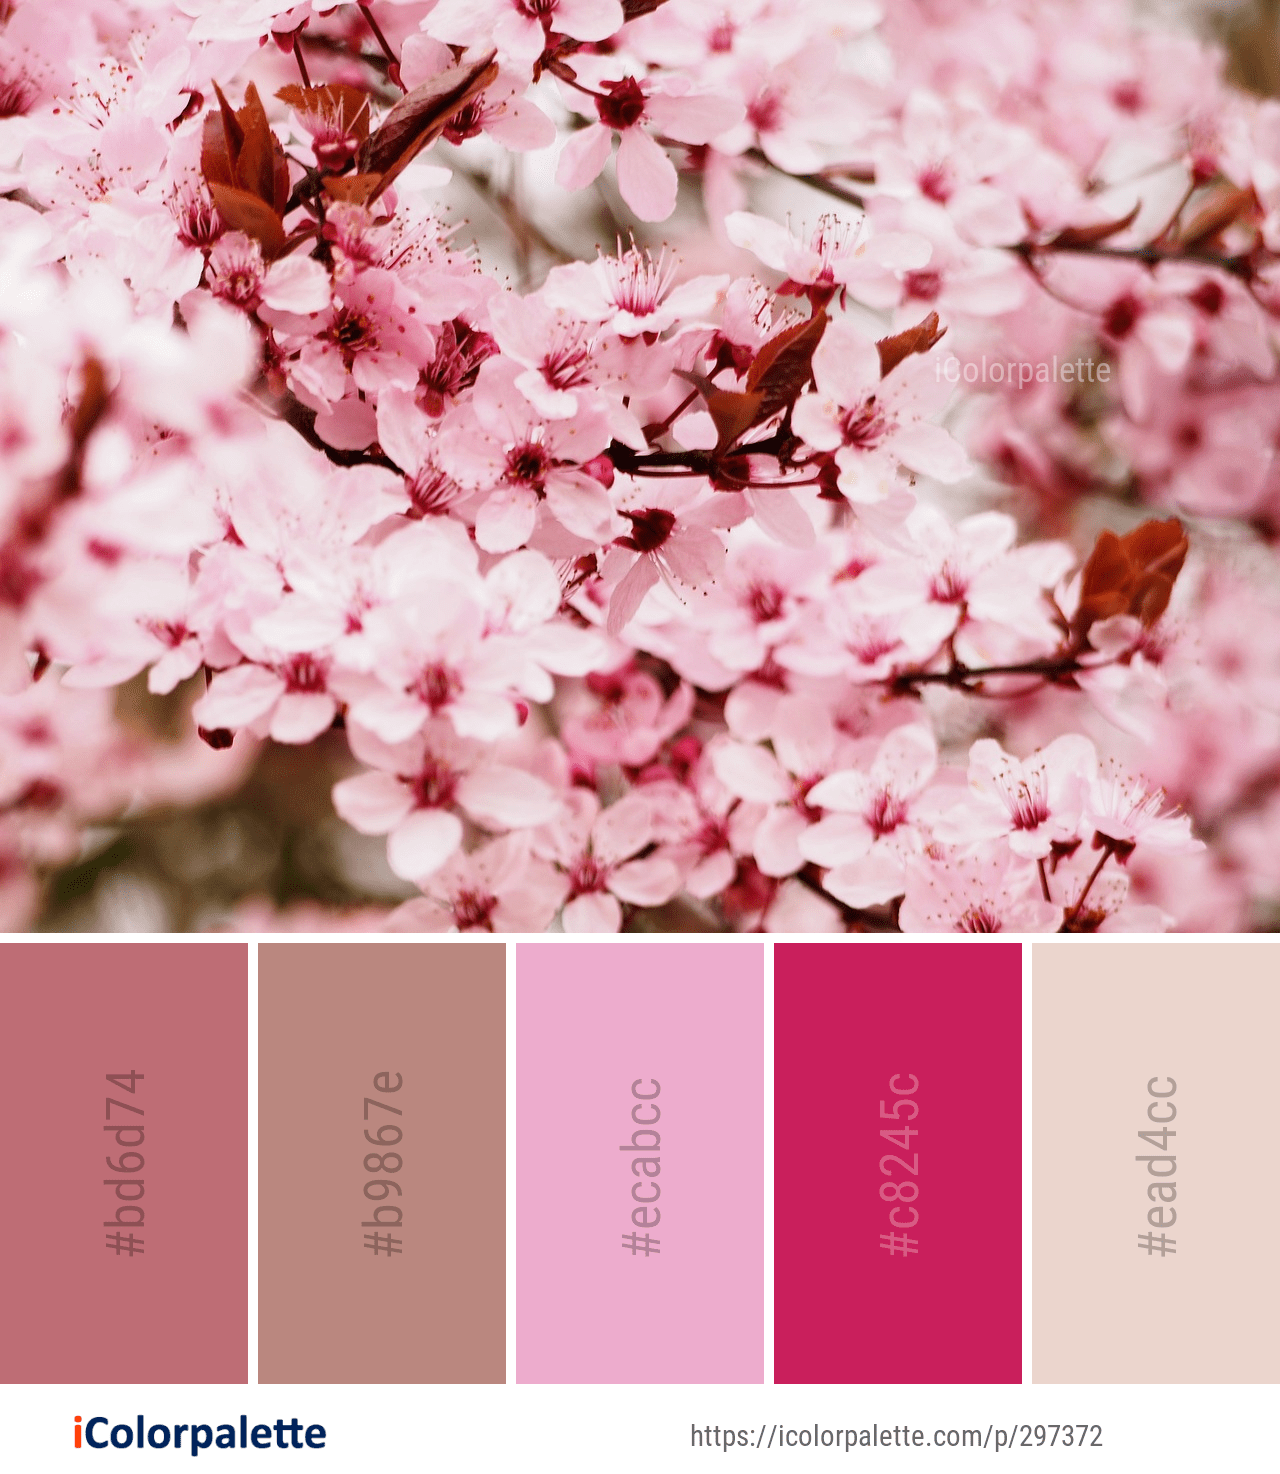 Color Palette Ideas From 1804 Blossom Images Icolorpalette Color Palette Pink Color Design Inspiration Color Balance